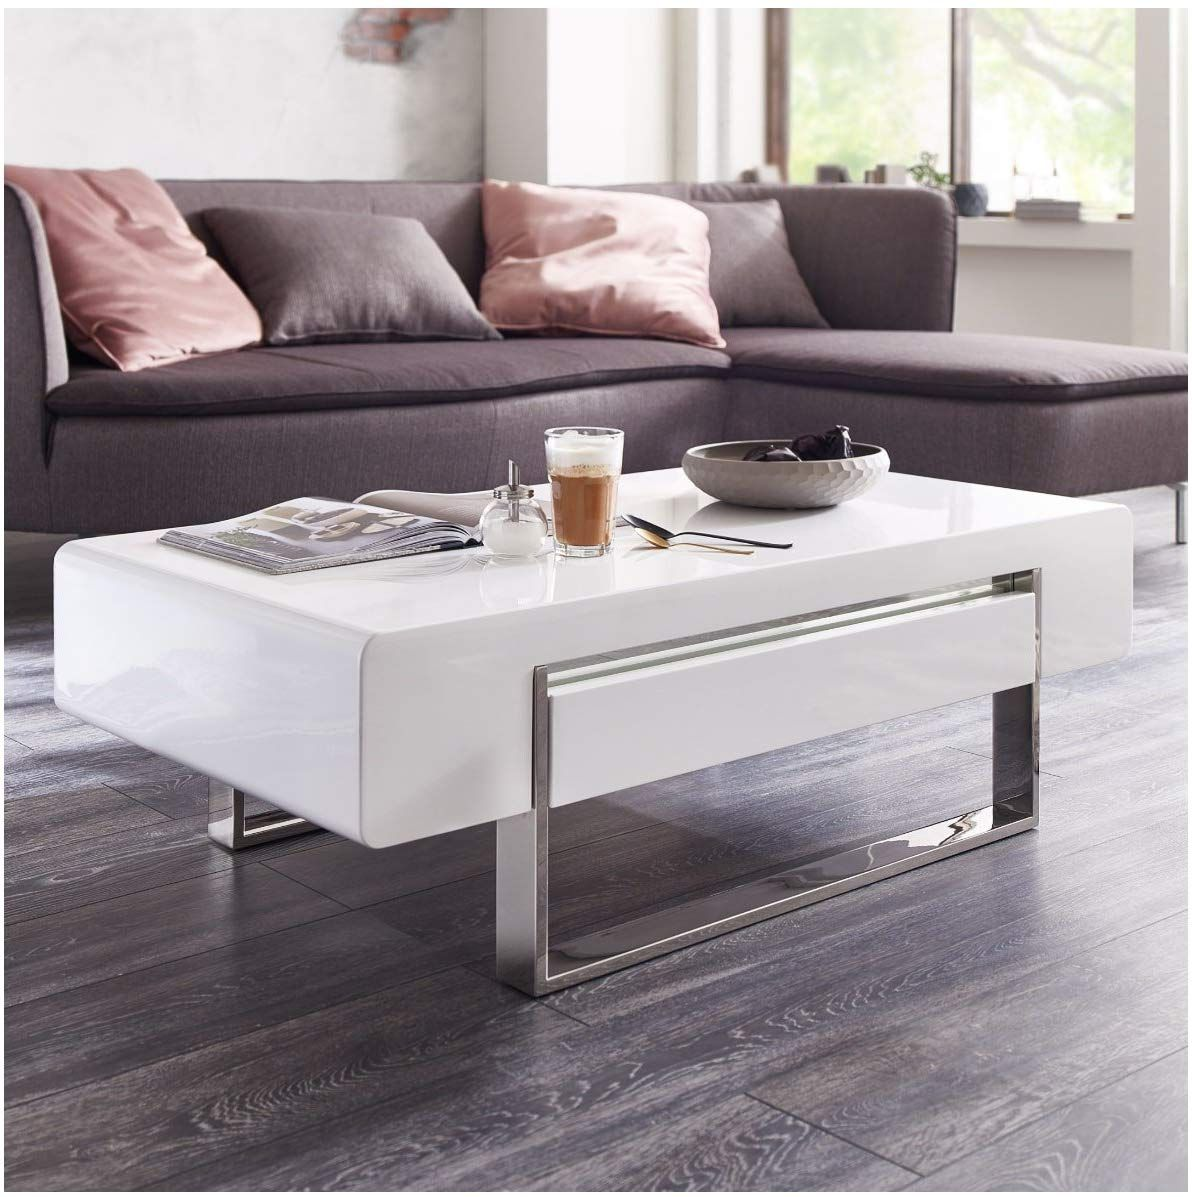 Moebella Couchtisch Weiß Hochglanz Mit Schublade Case 120x60x38cm Wohnzimmertisch Amazon De Küche Haushalt Living Room Table Furniture Coffee Table